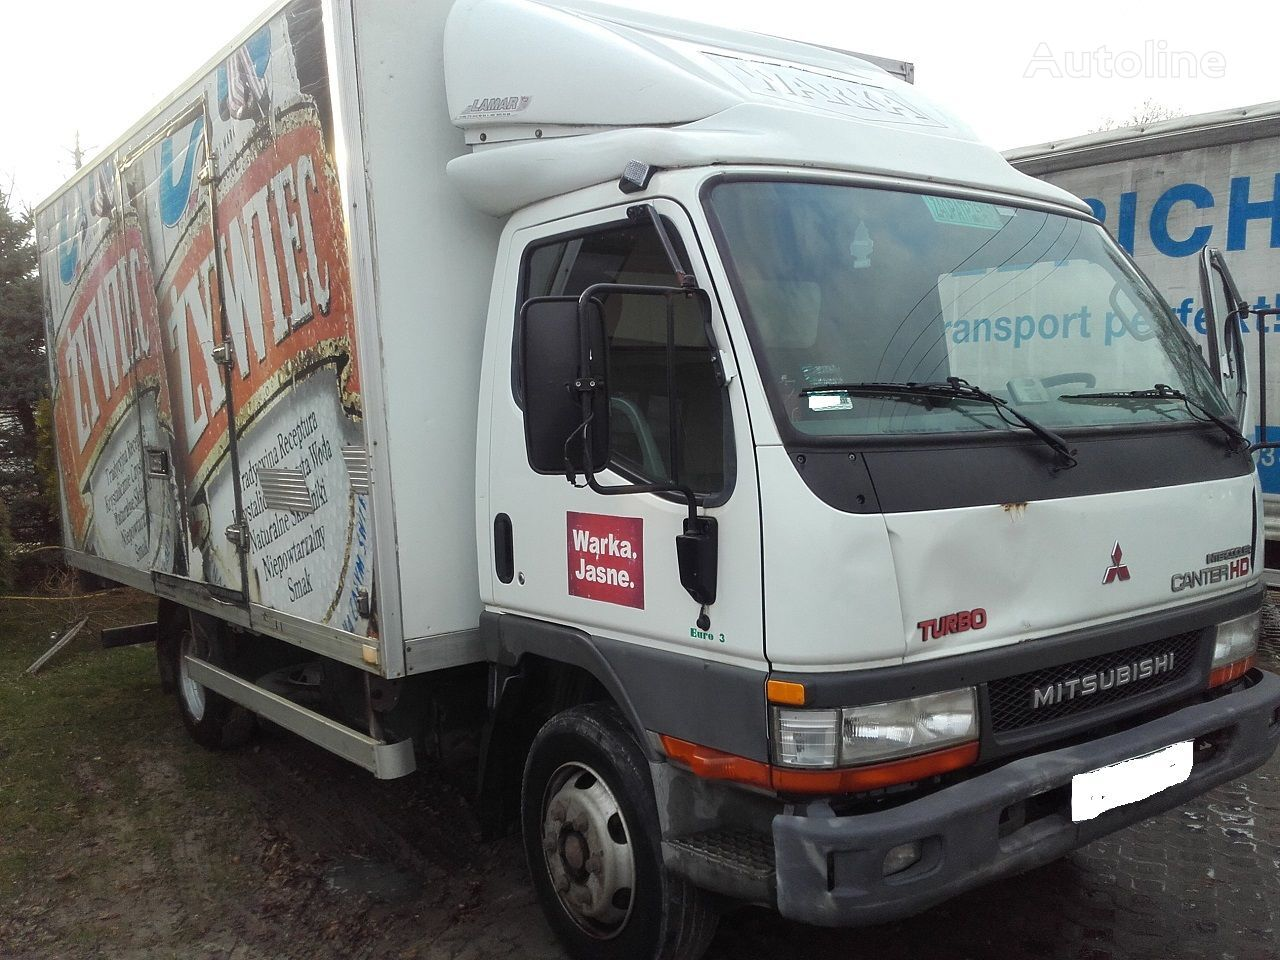 MITSUBISHI CANTER 3.9 HD camion fourgon